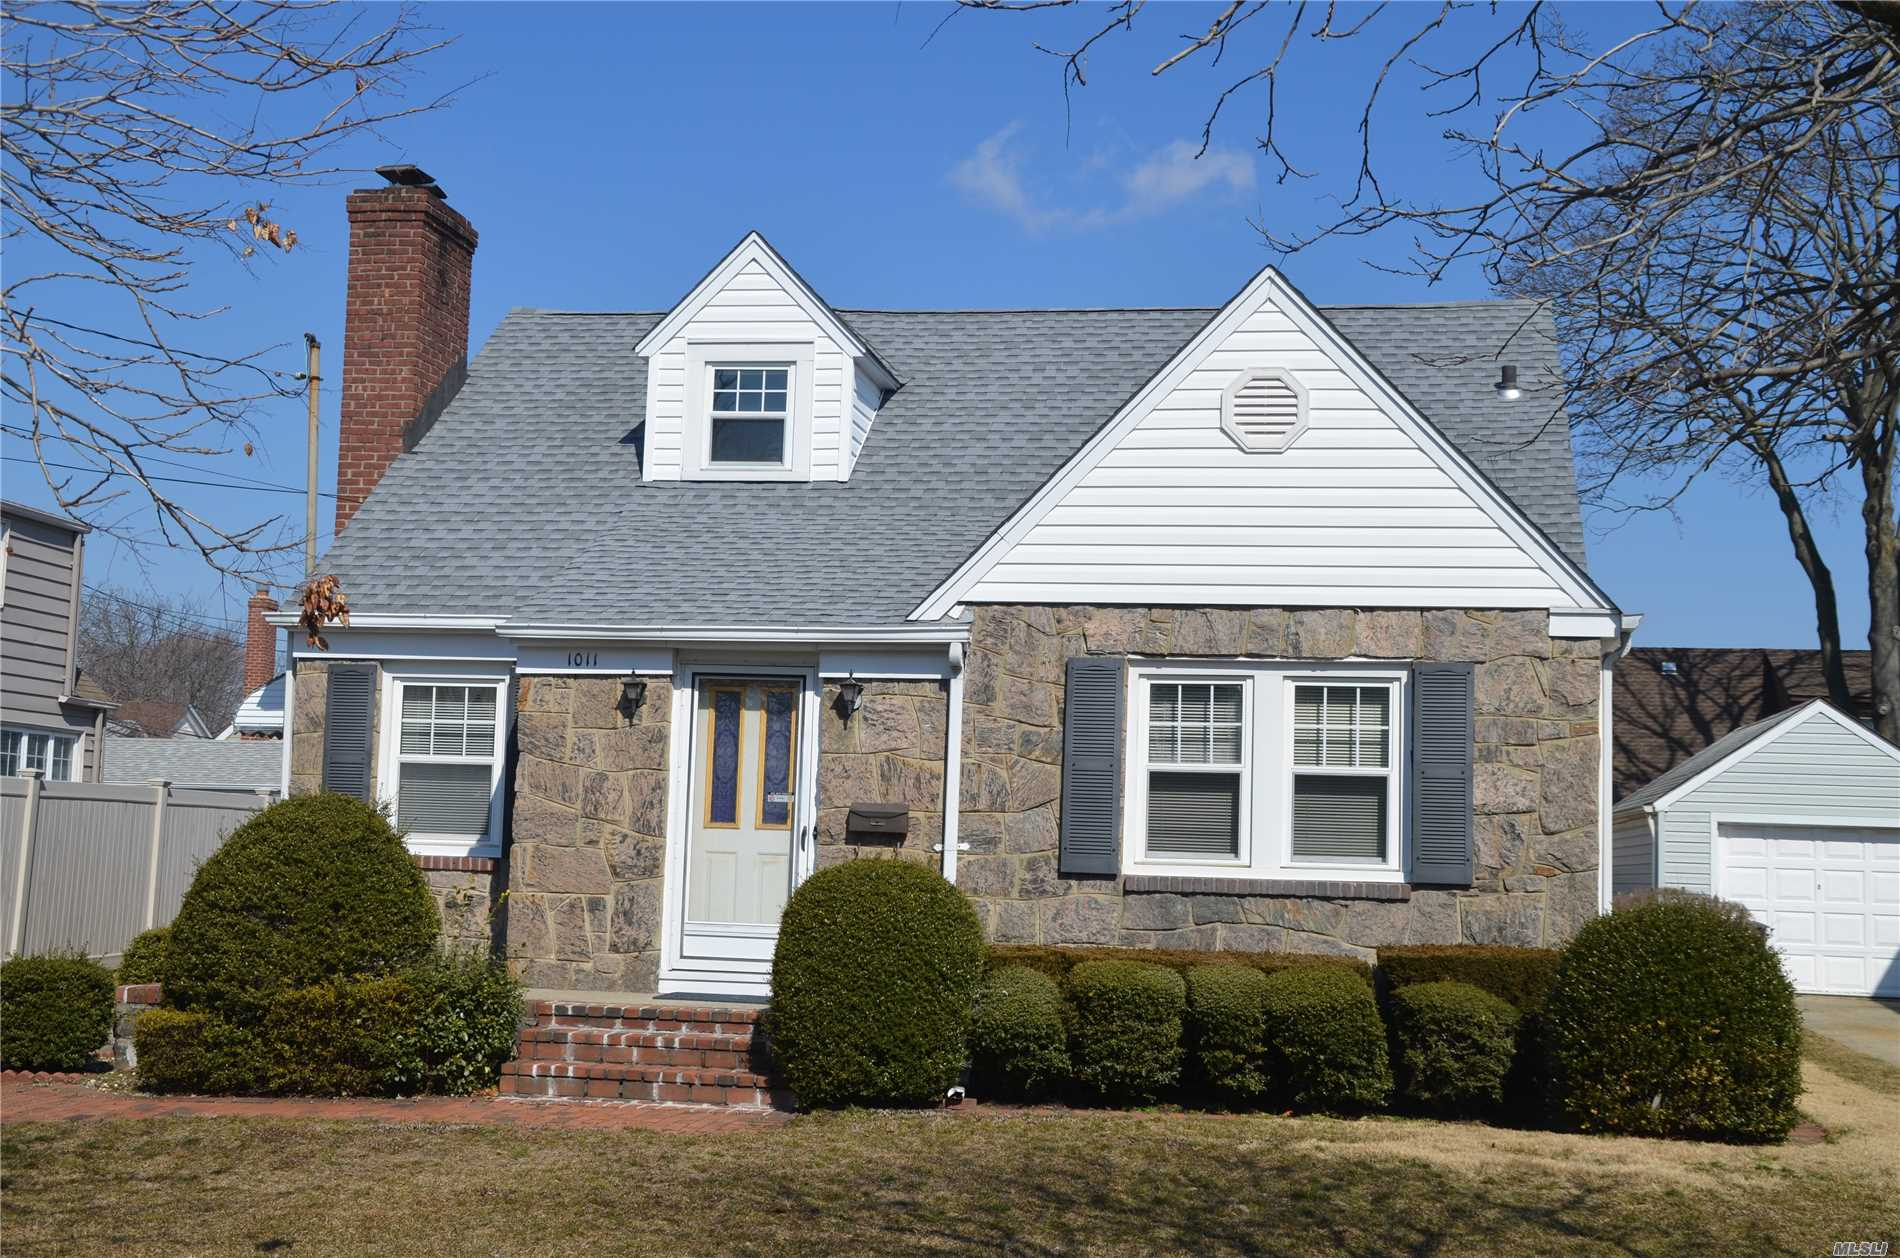 SUPER LOW TAXES!!! Phenomenal retirement or starter home. This cozy 2 bedroom Cape has amazing potential for finishing the walk-up attic into a 3rd bedroom. This home feature wood floors, a wood burning Fireplace, open Eat in Kitchen, and a full finished basement/family room, just blocks to the LIRR and Steele Elementary School.